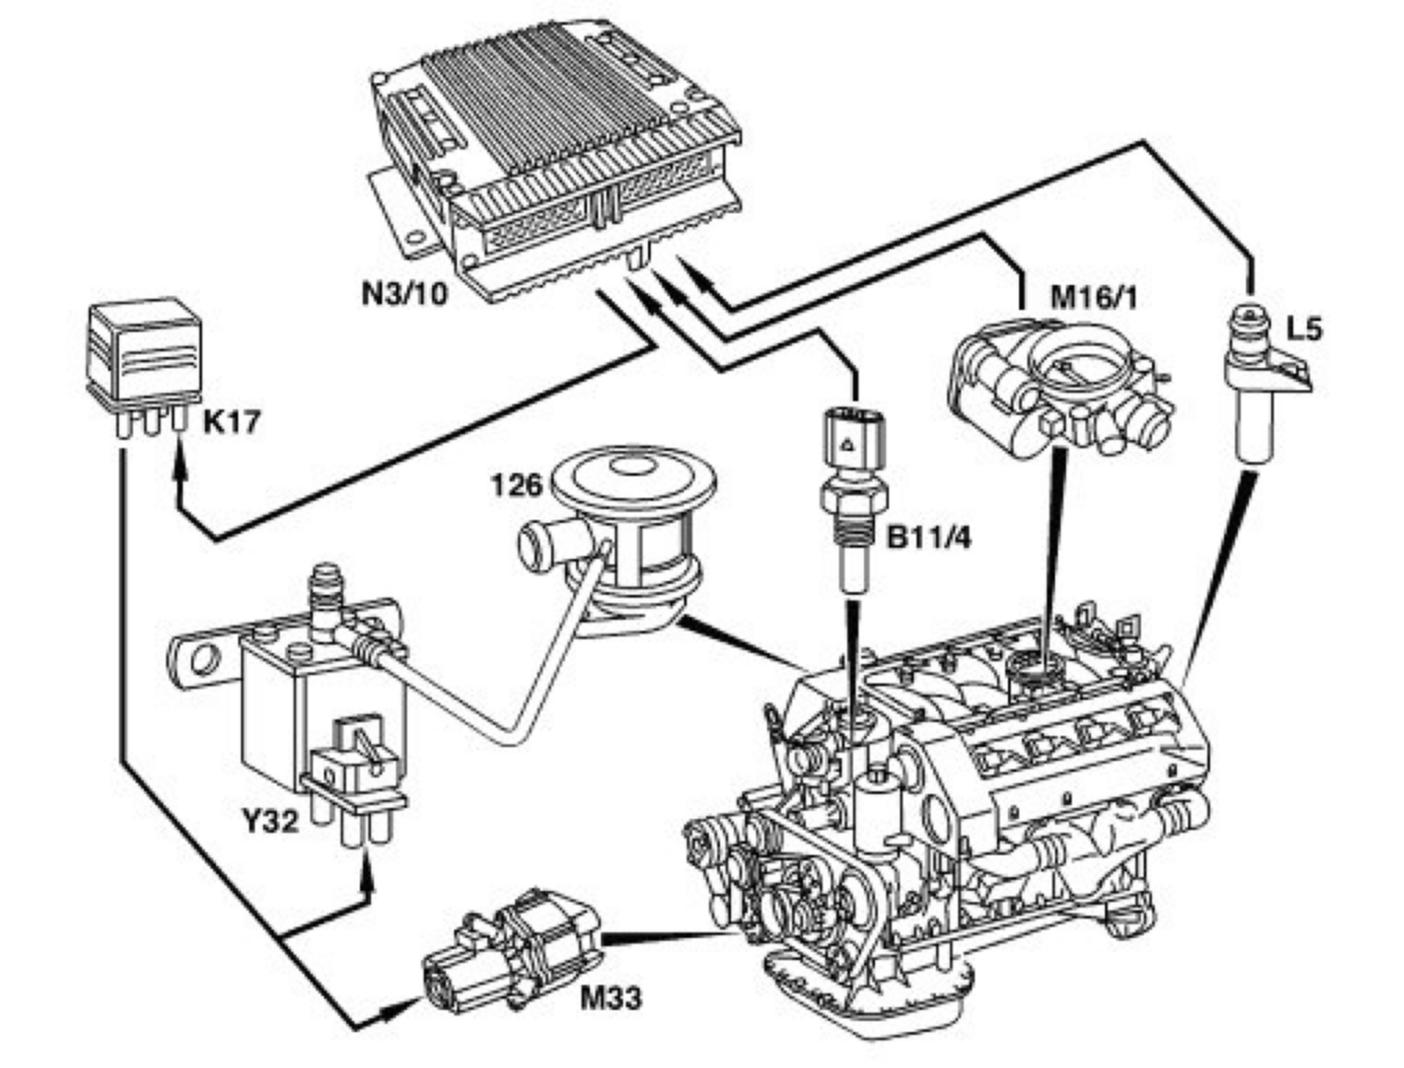 1998 slk230 engine check